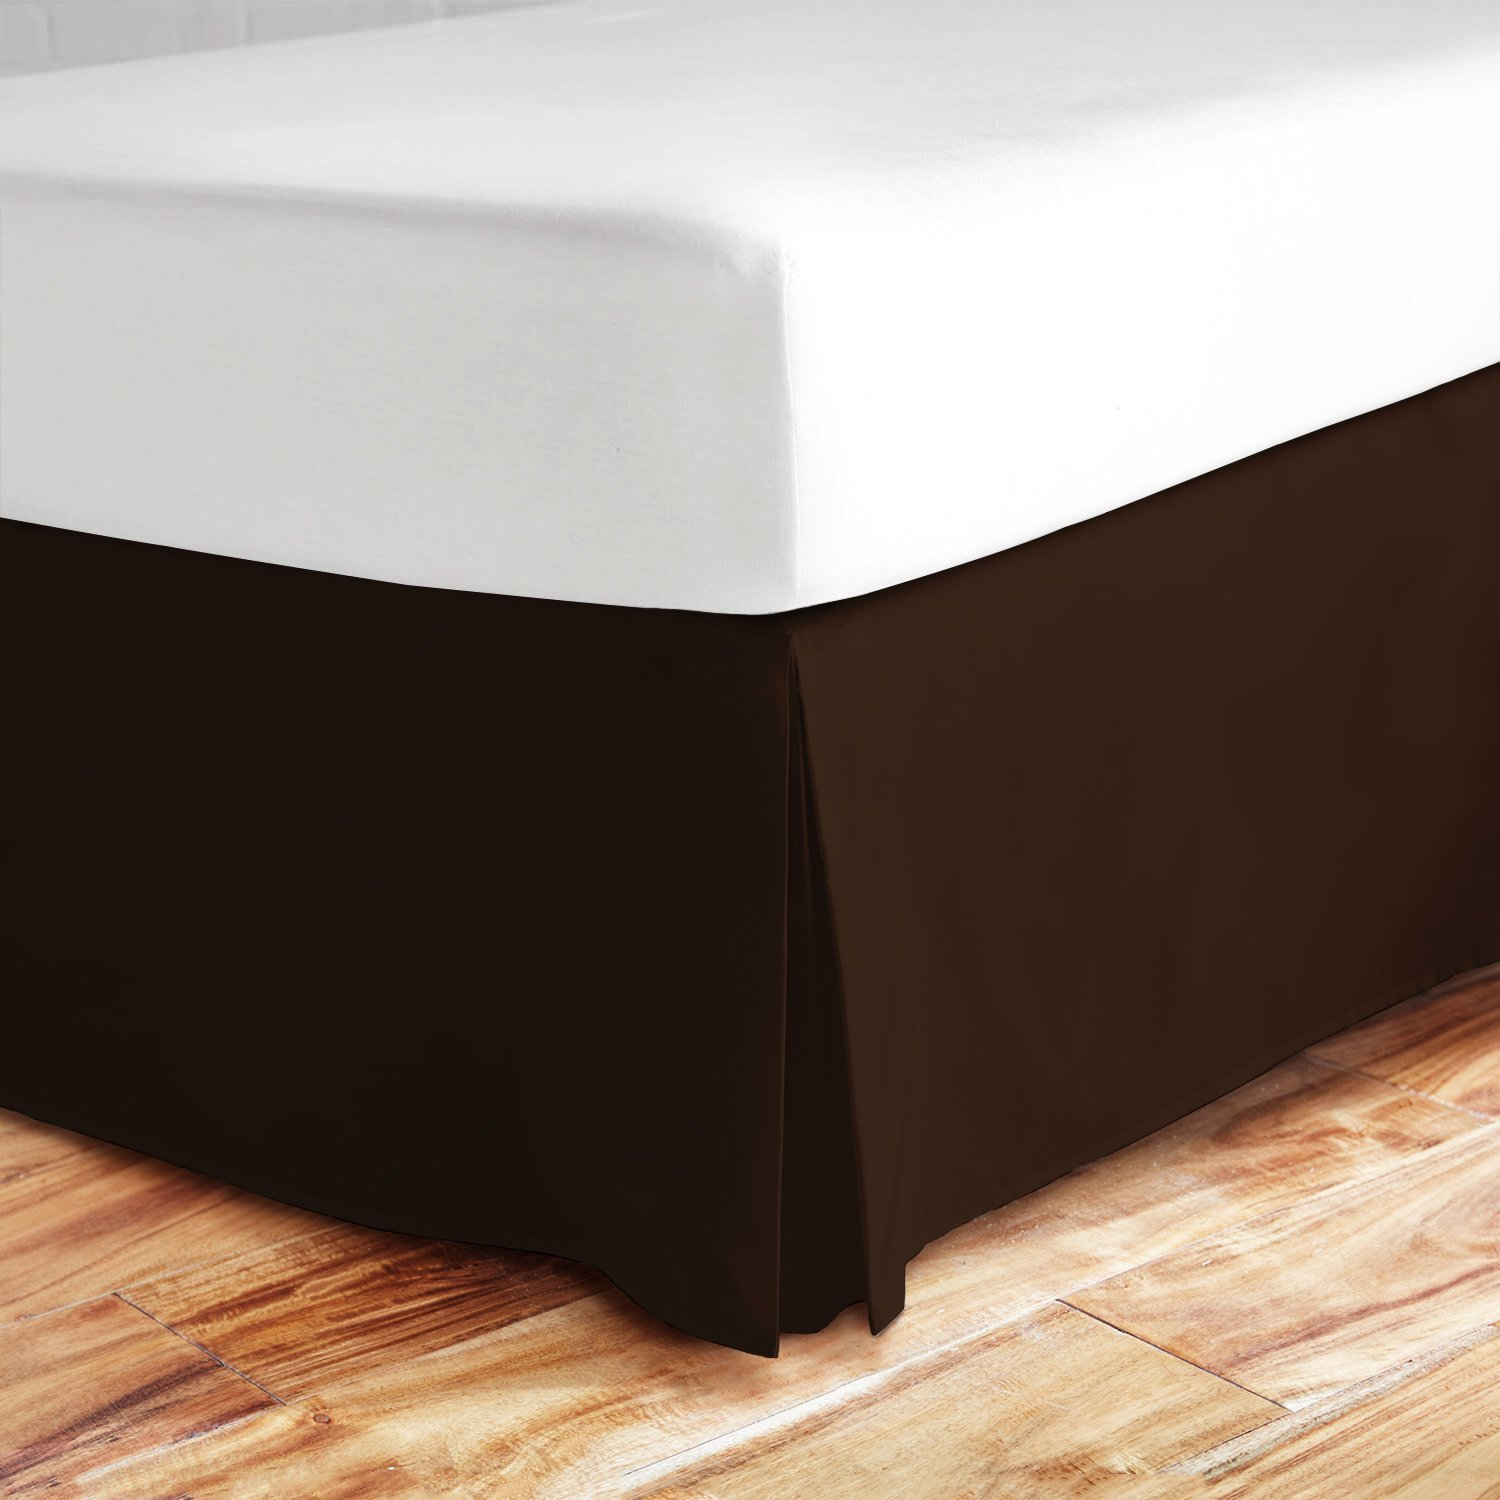 (California King, Brown) - Zen Bamboo Ultra Soft Bed Skirt - Premium, Eco-friendly, Hypoallergenic, and Wrinkle Resistant Bamboo Dust Ruffle with 36cm Drop - California King - Brown B06XX2KGX2 ブラウン California King